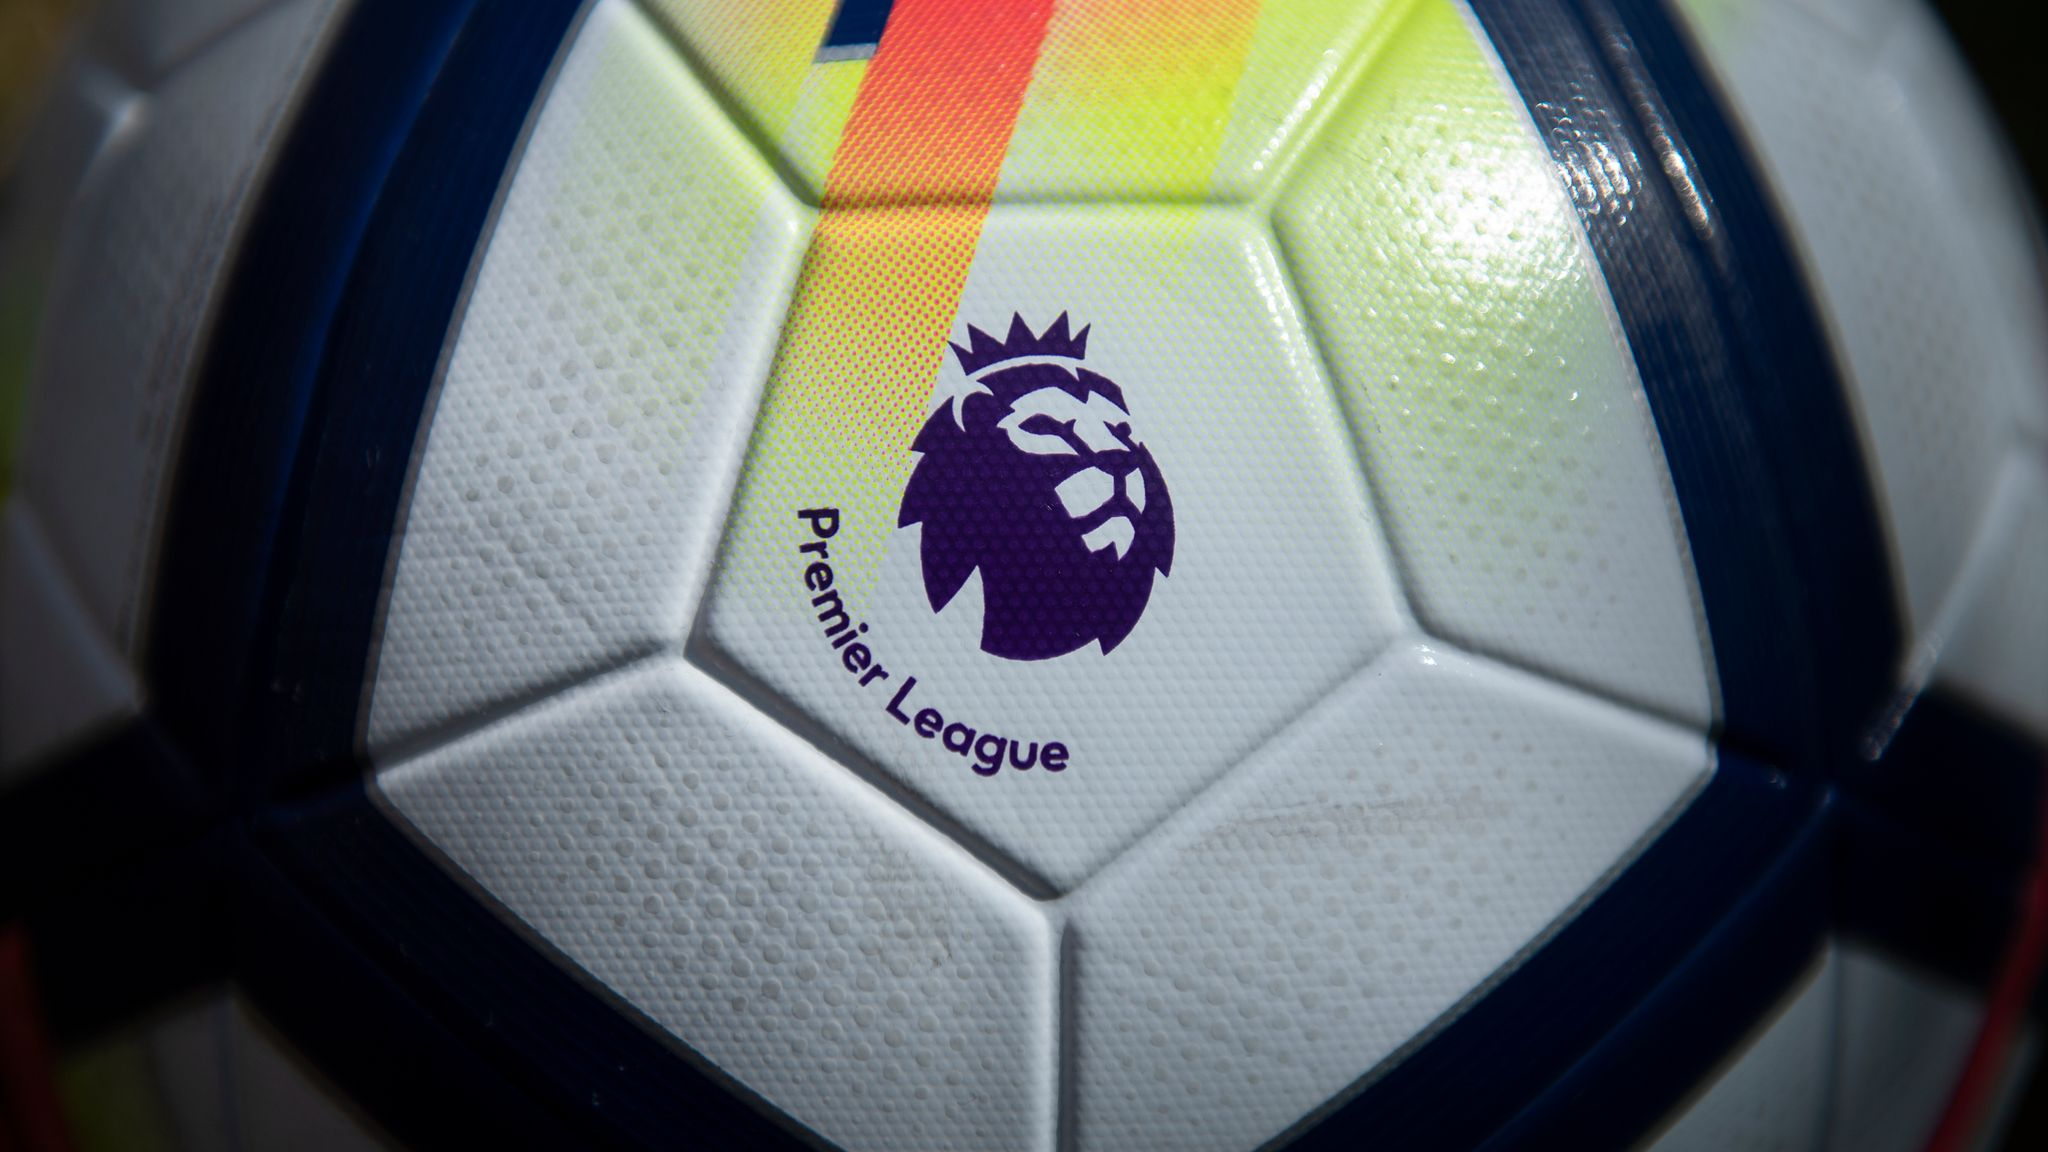 Premier league betting offers in compromise binary options trading software that works